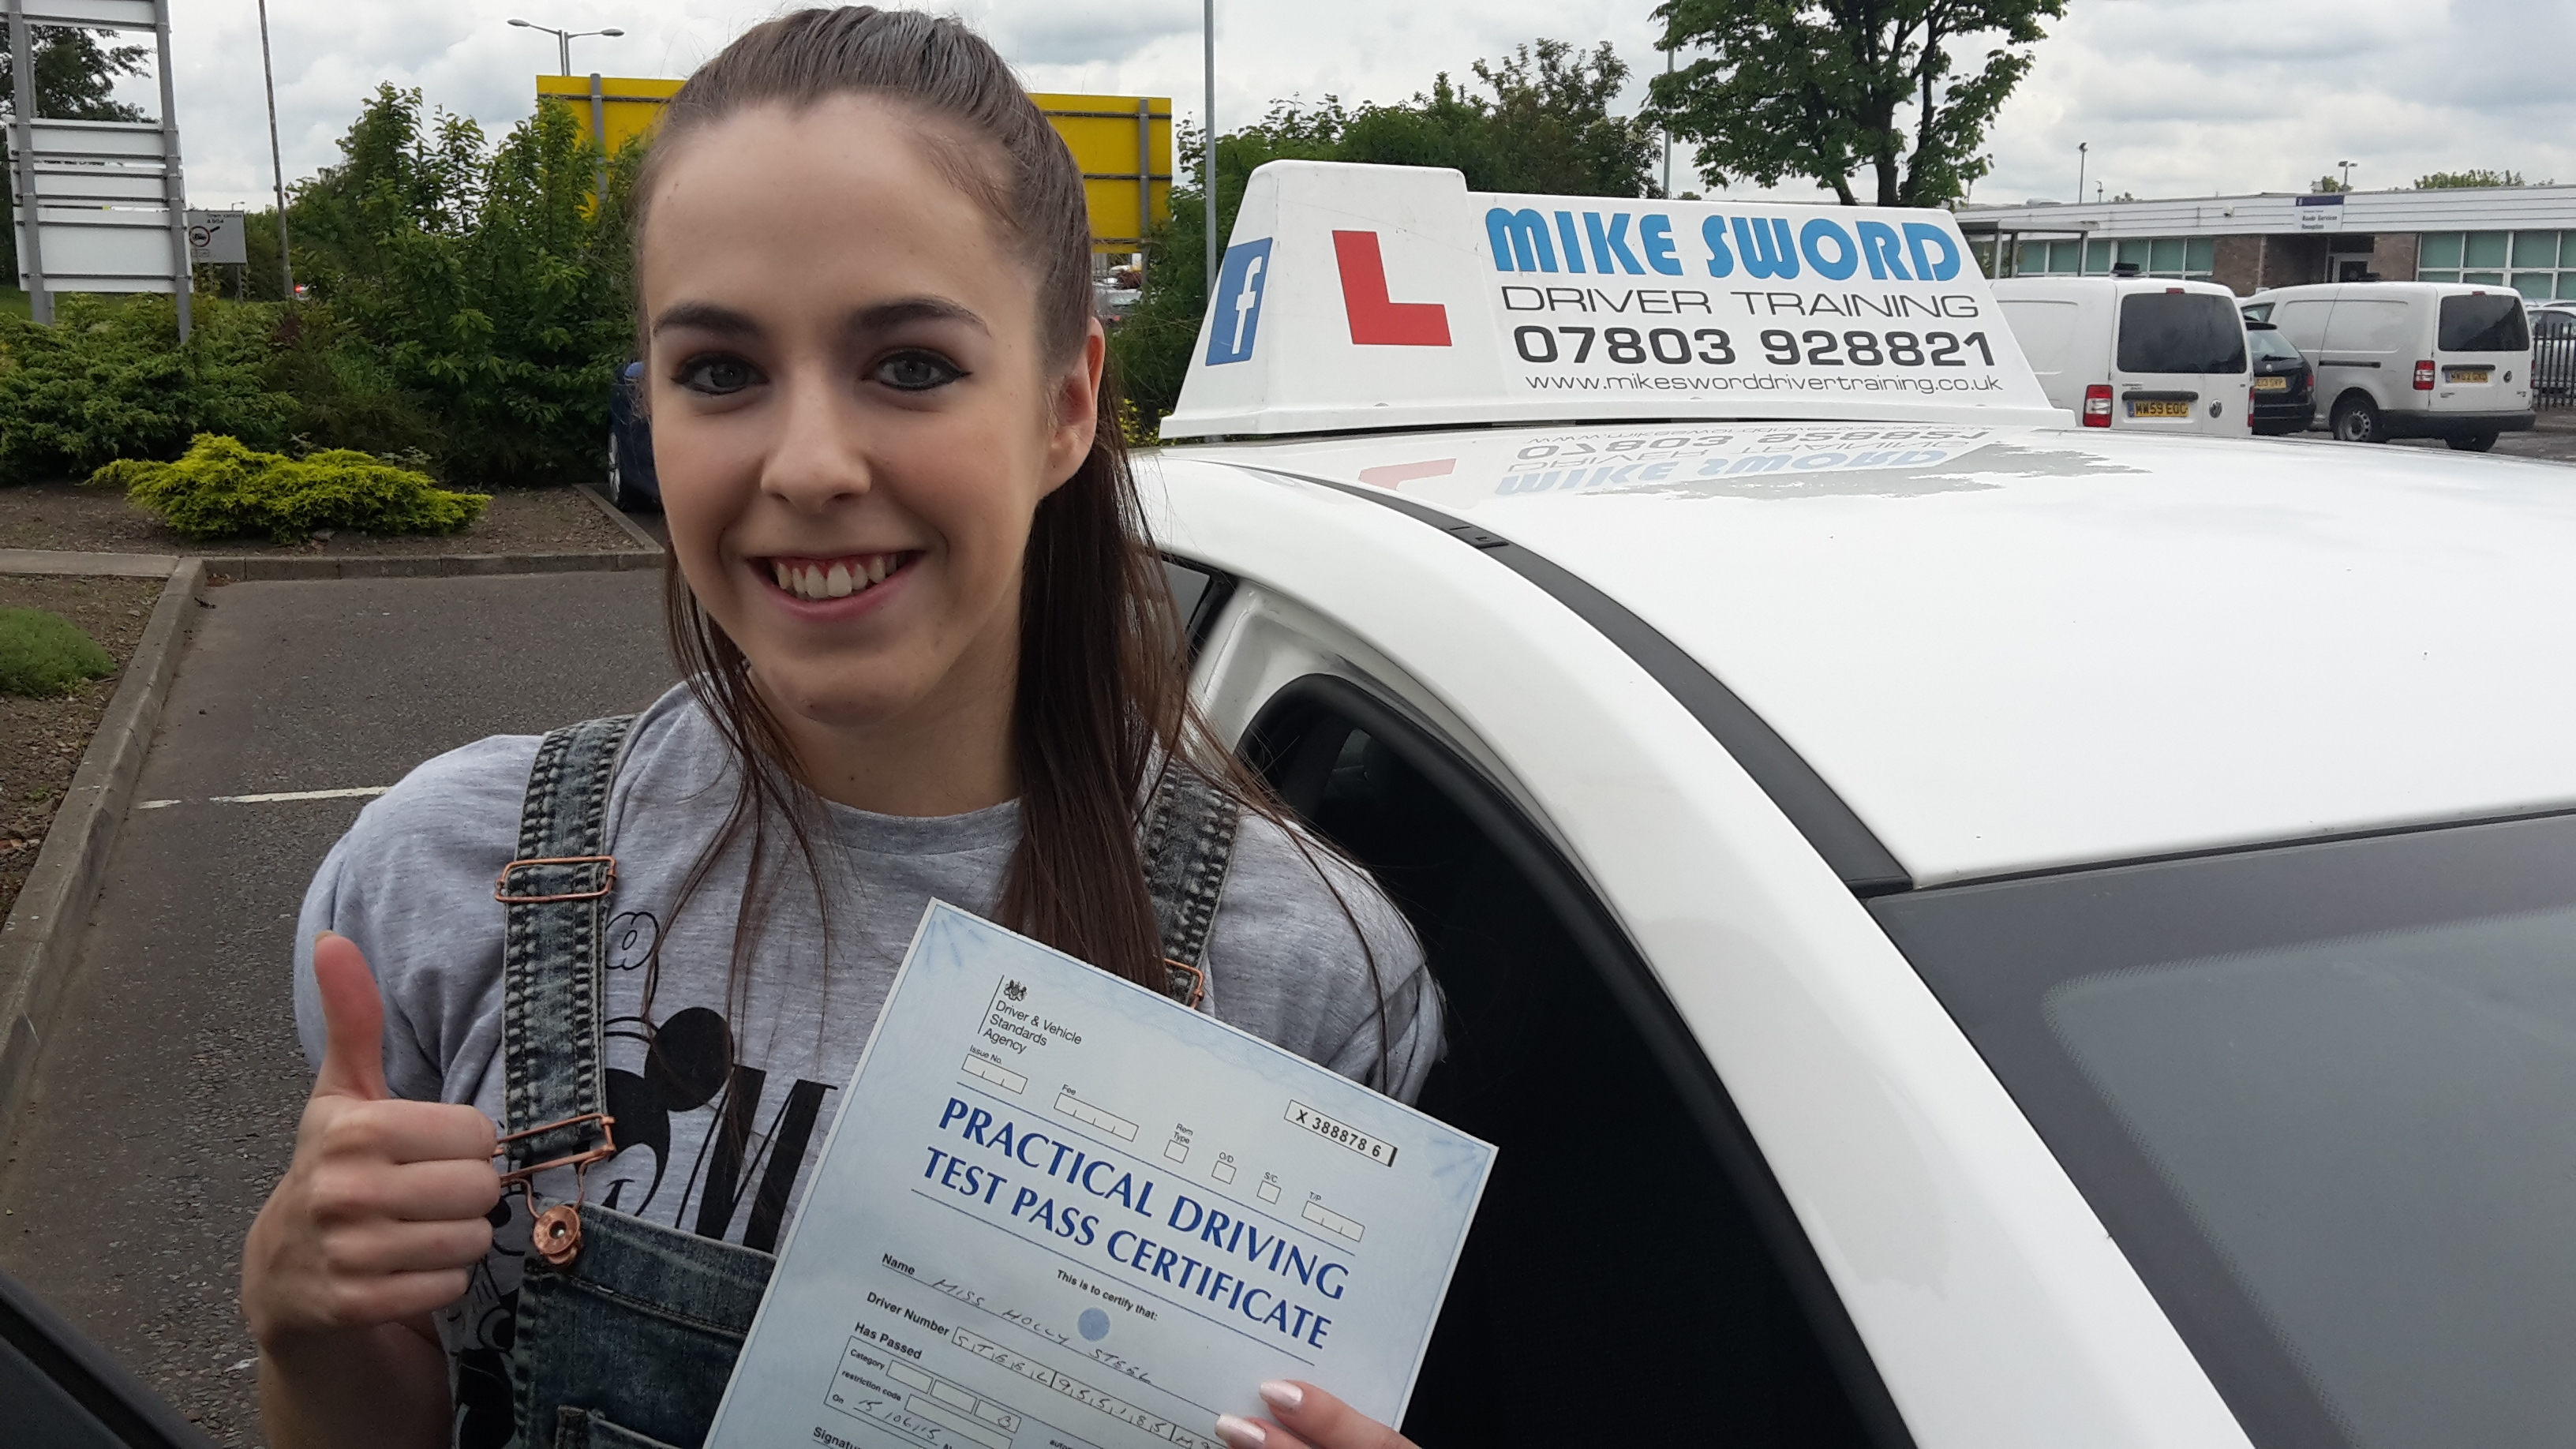 Mike Sword Driver Training Falkirk Driving Instructor Lessons Holly Steel